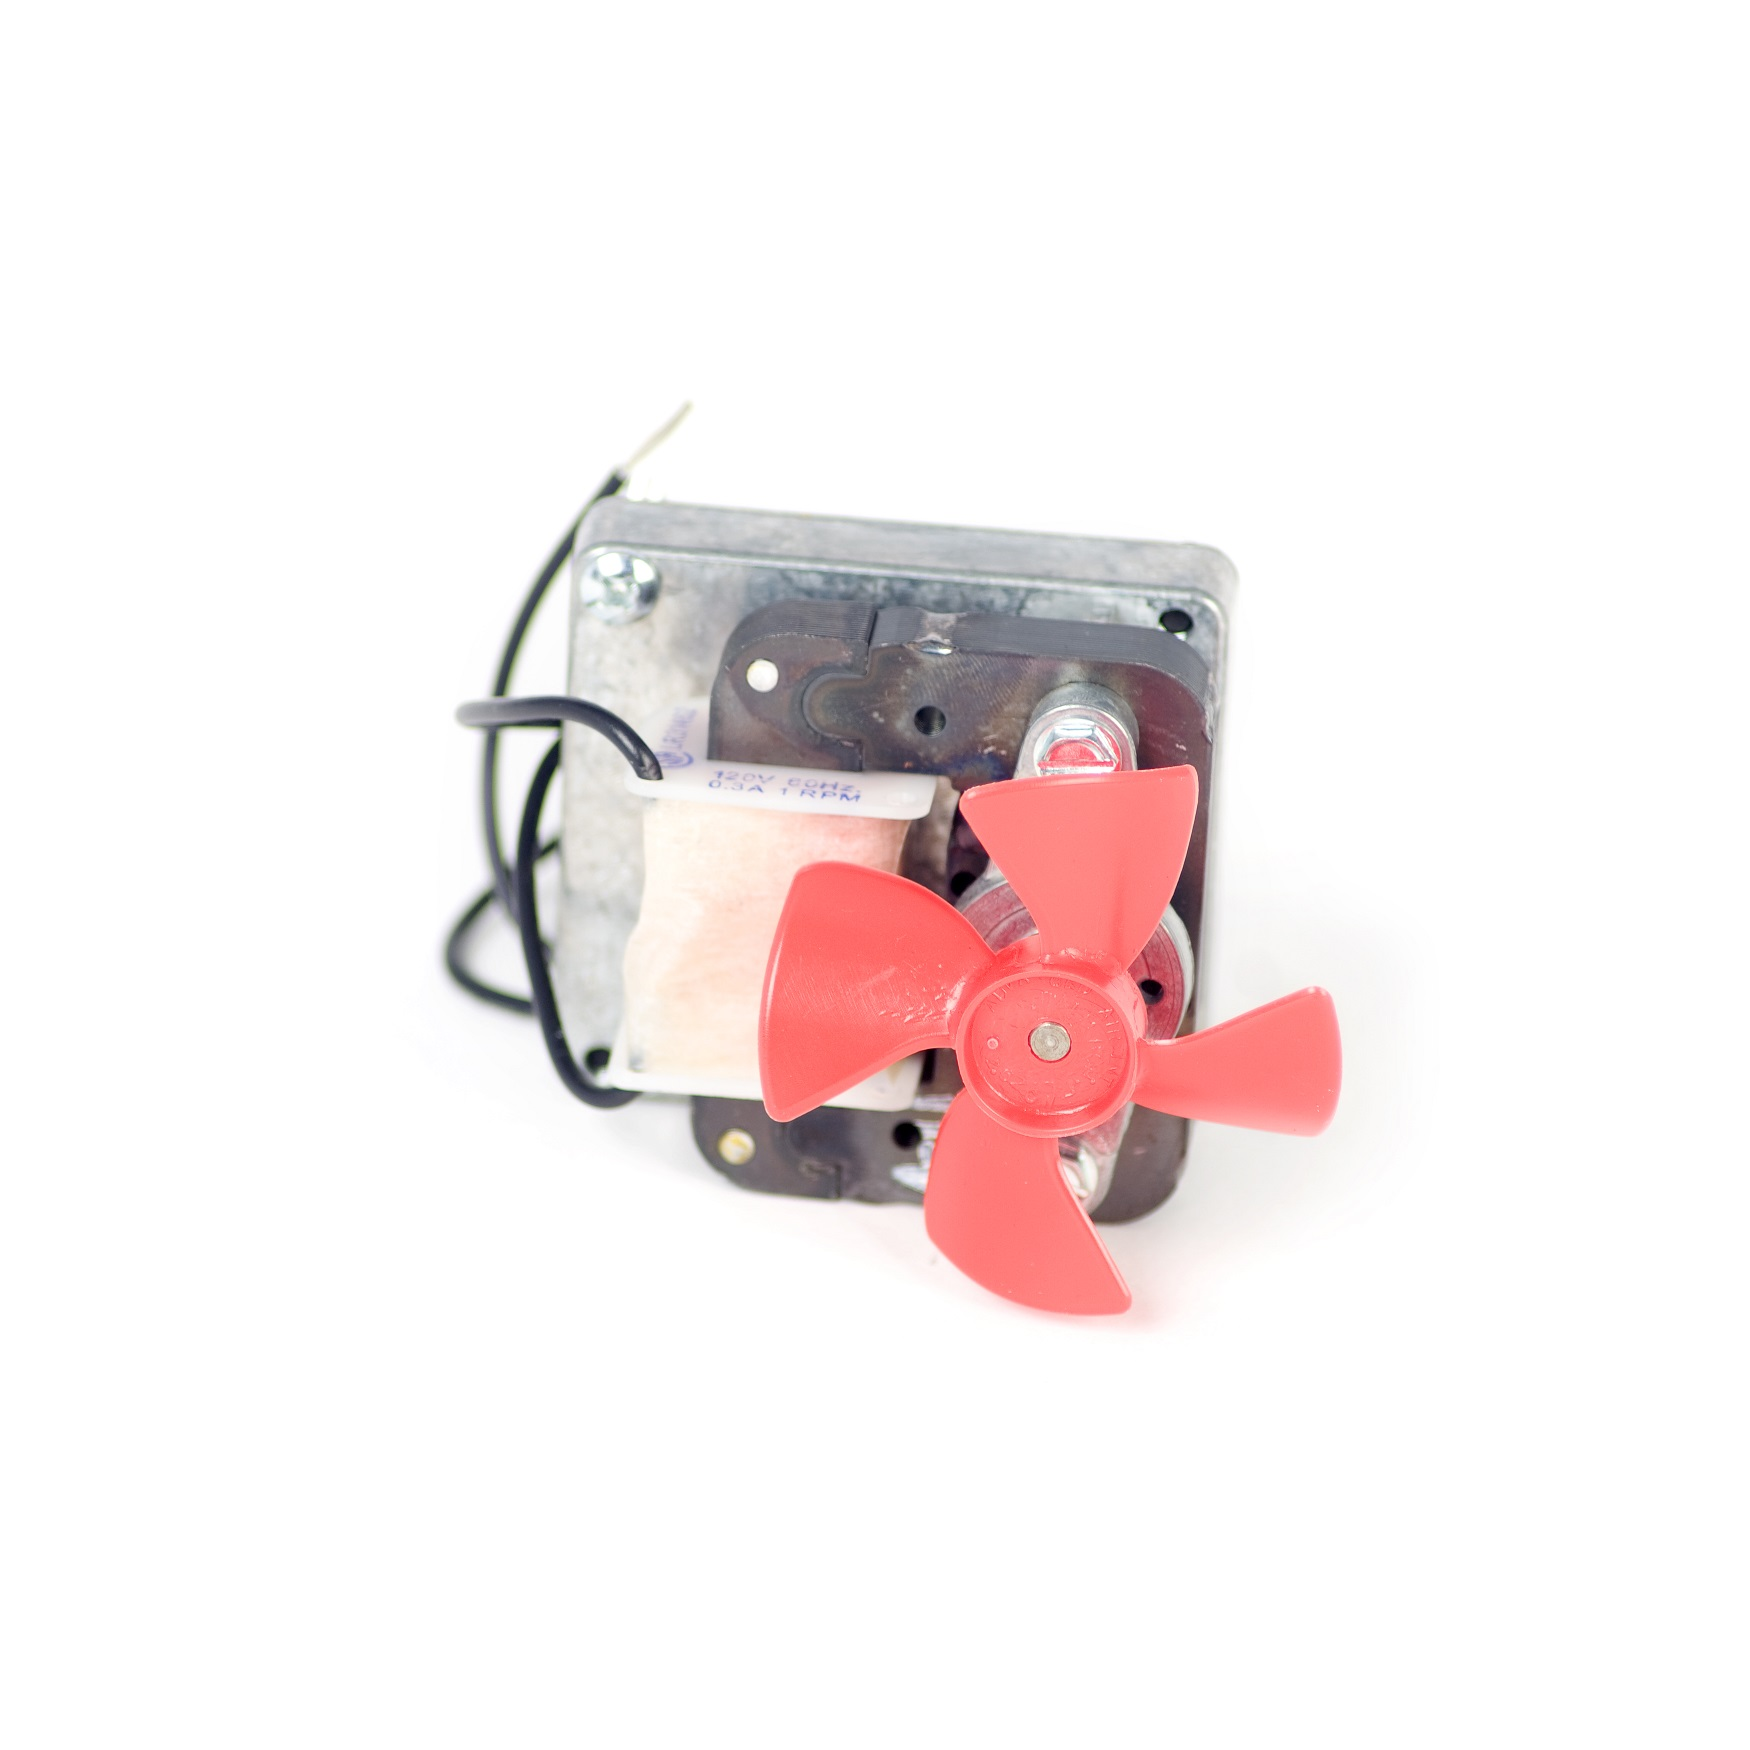 G500 motor with extension - 120V